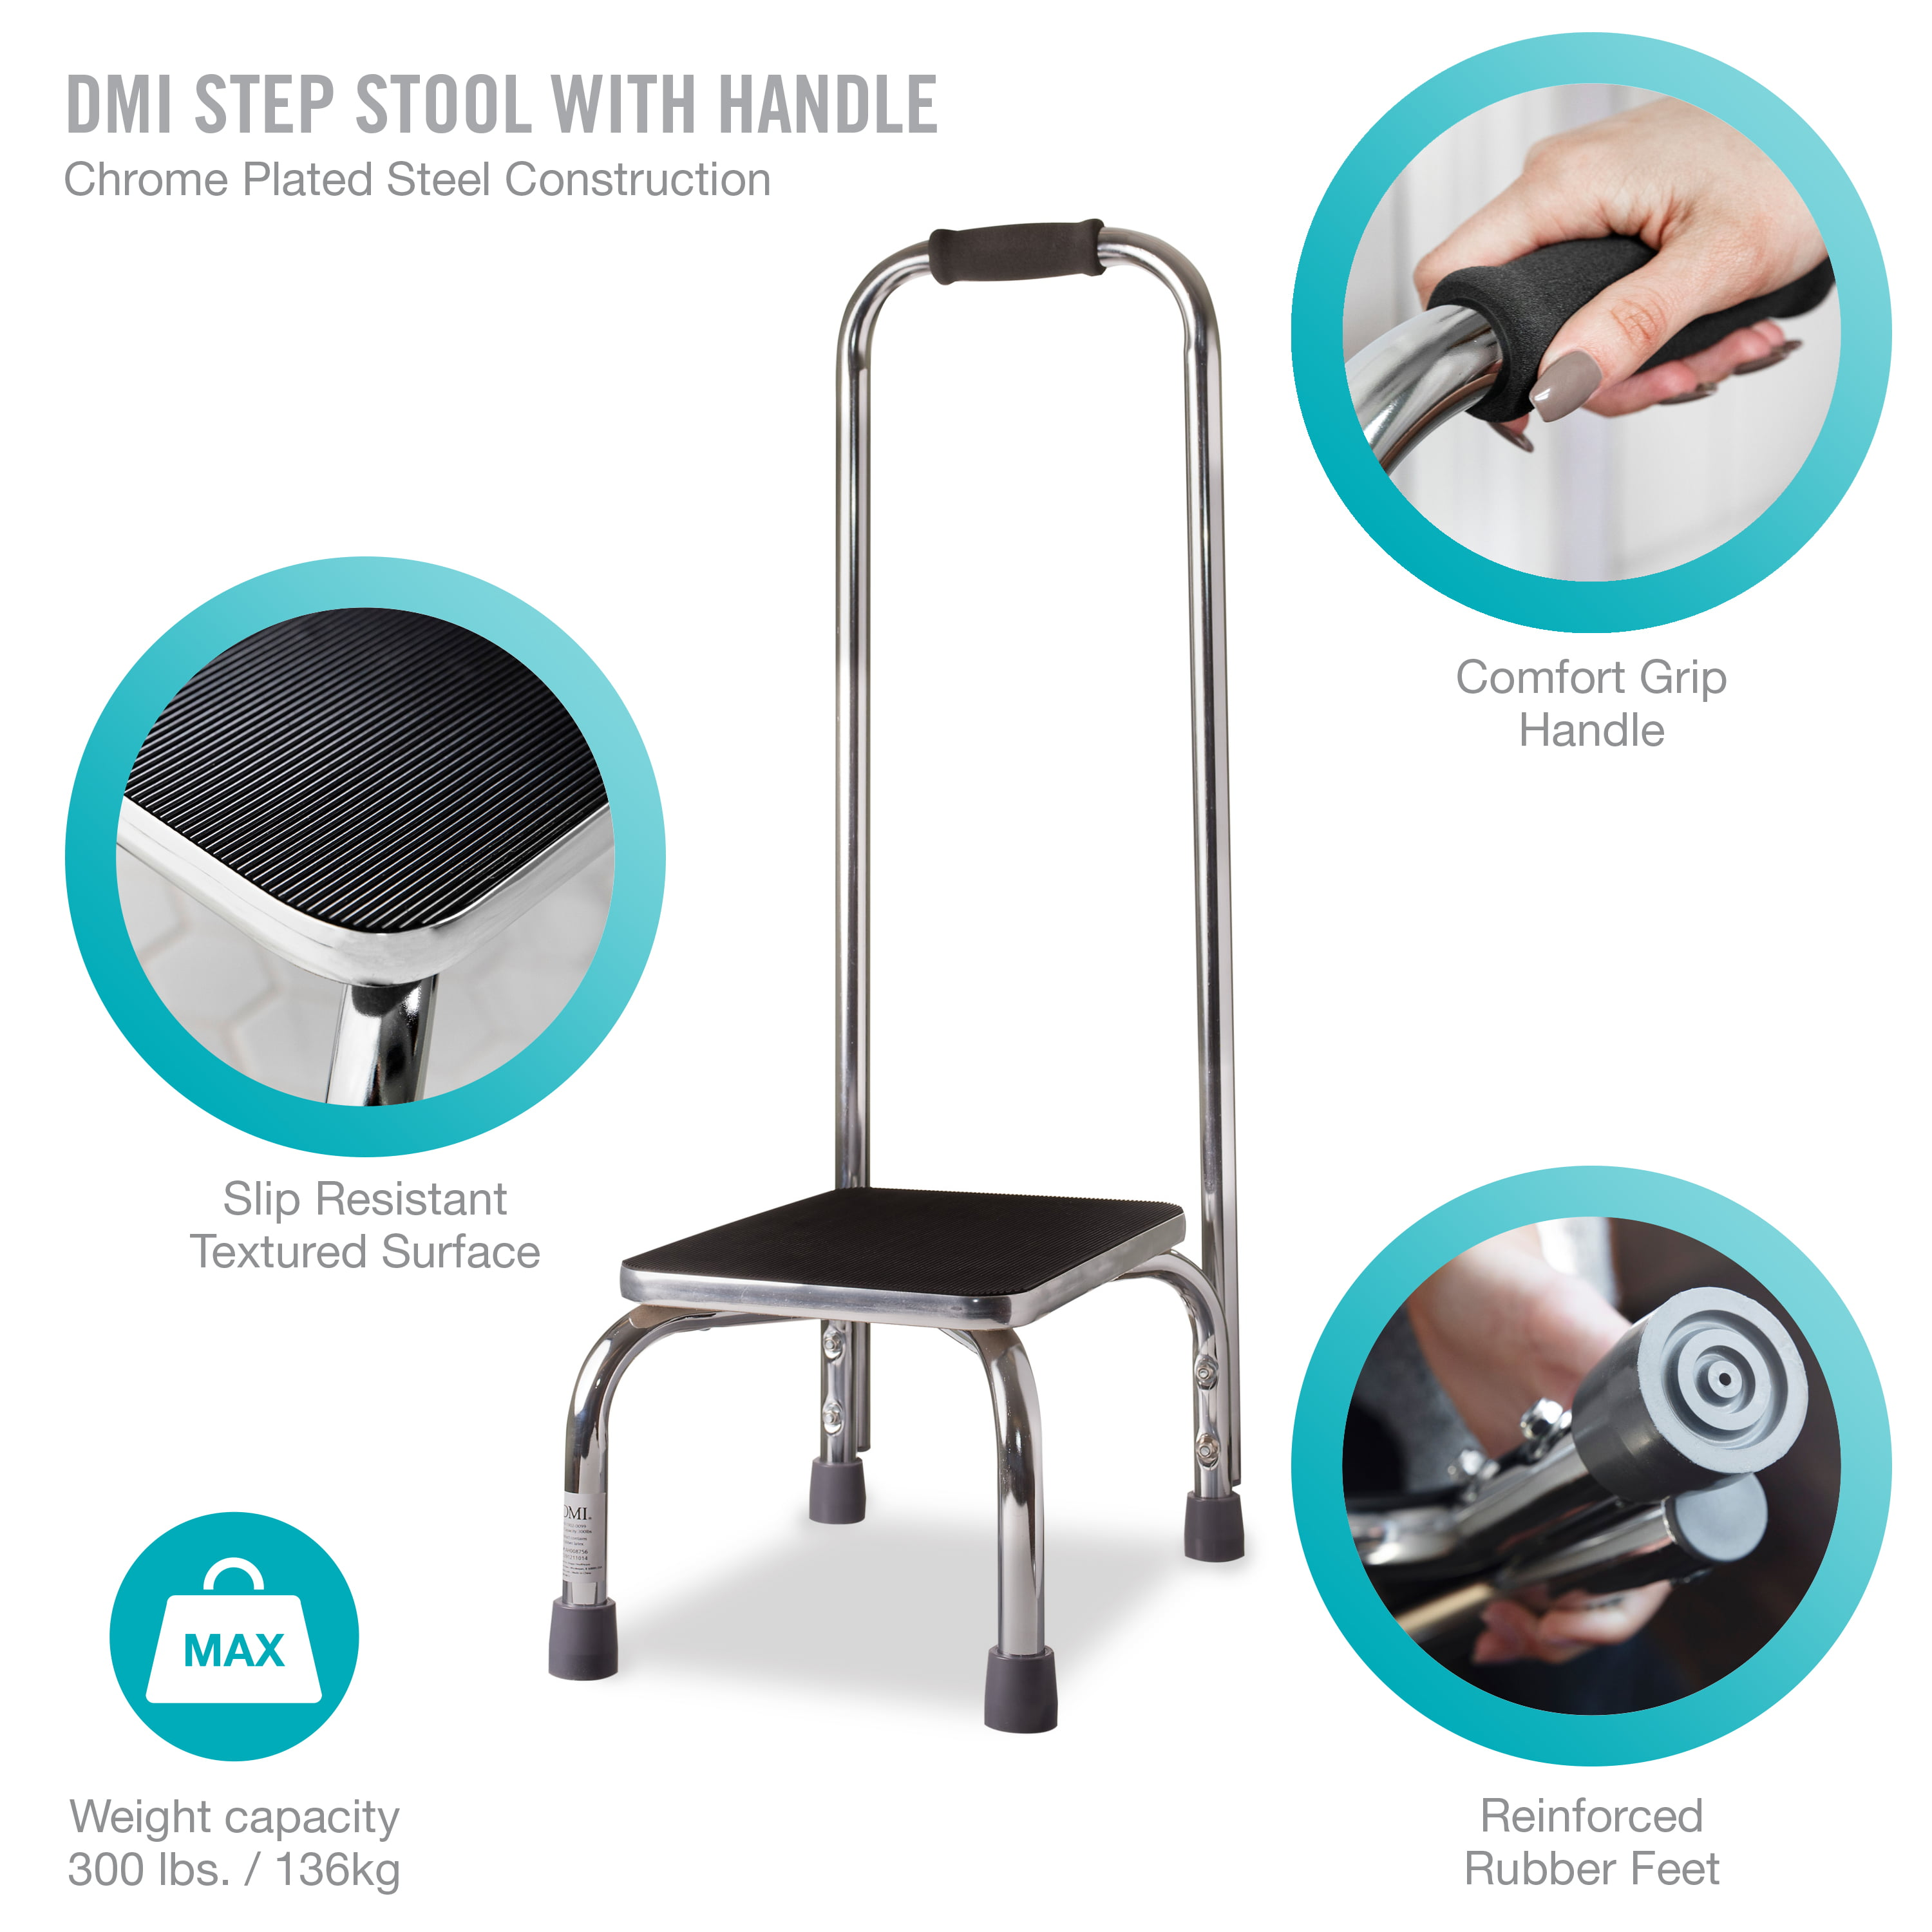 Superb Dmi Step Stool With Handle Heavy Duty Metal For High Beds Ibusinesslaw Wood Chair Design Ideas Ibusinesslaworg